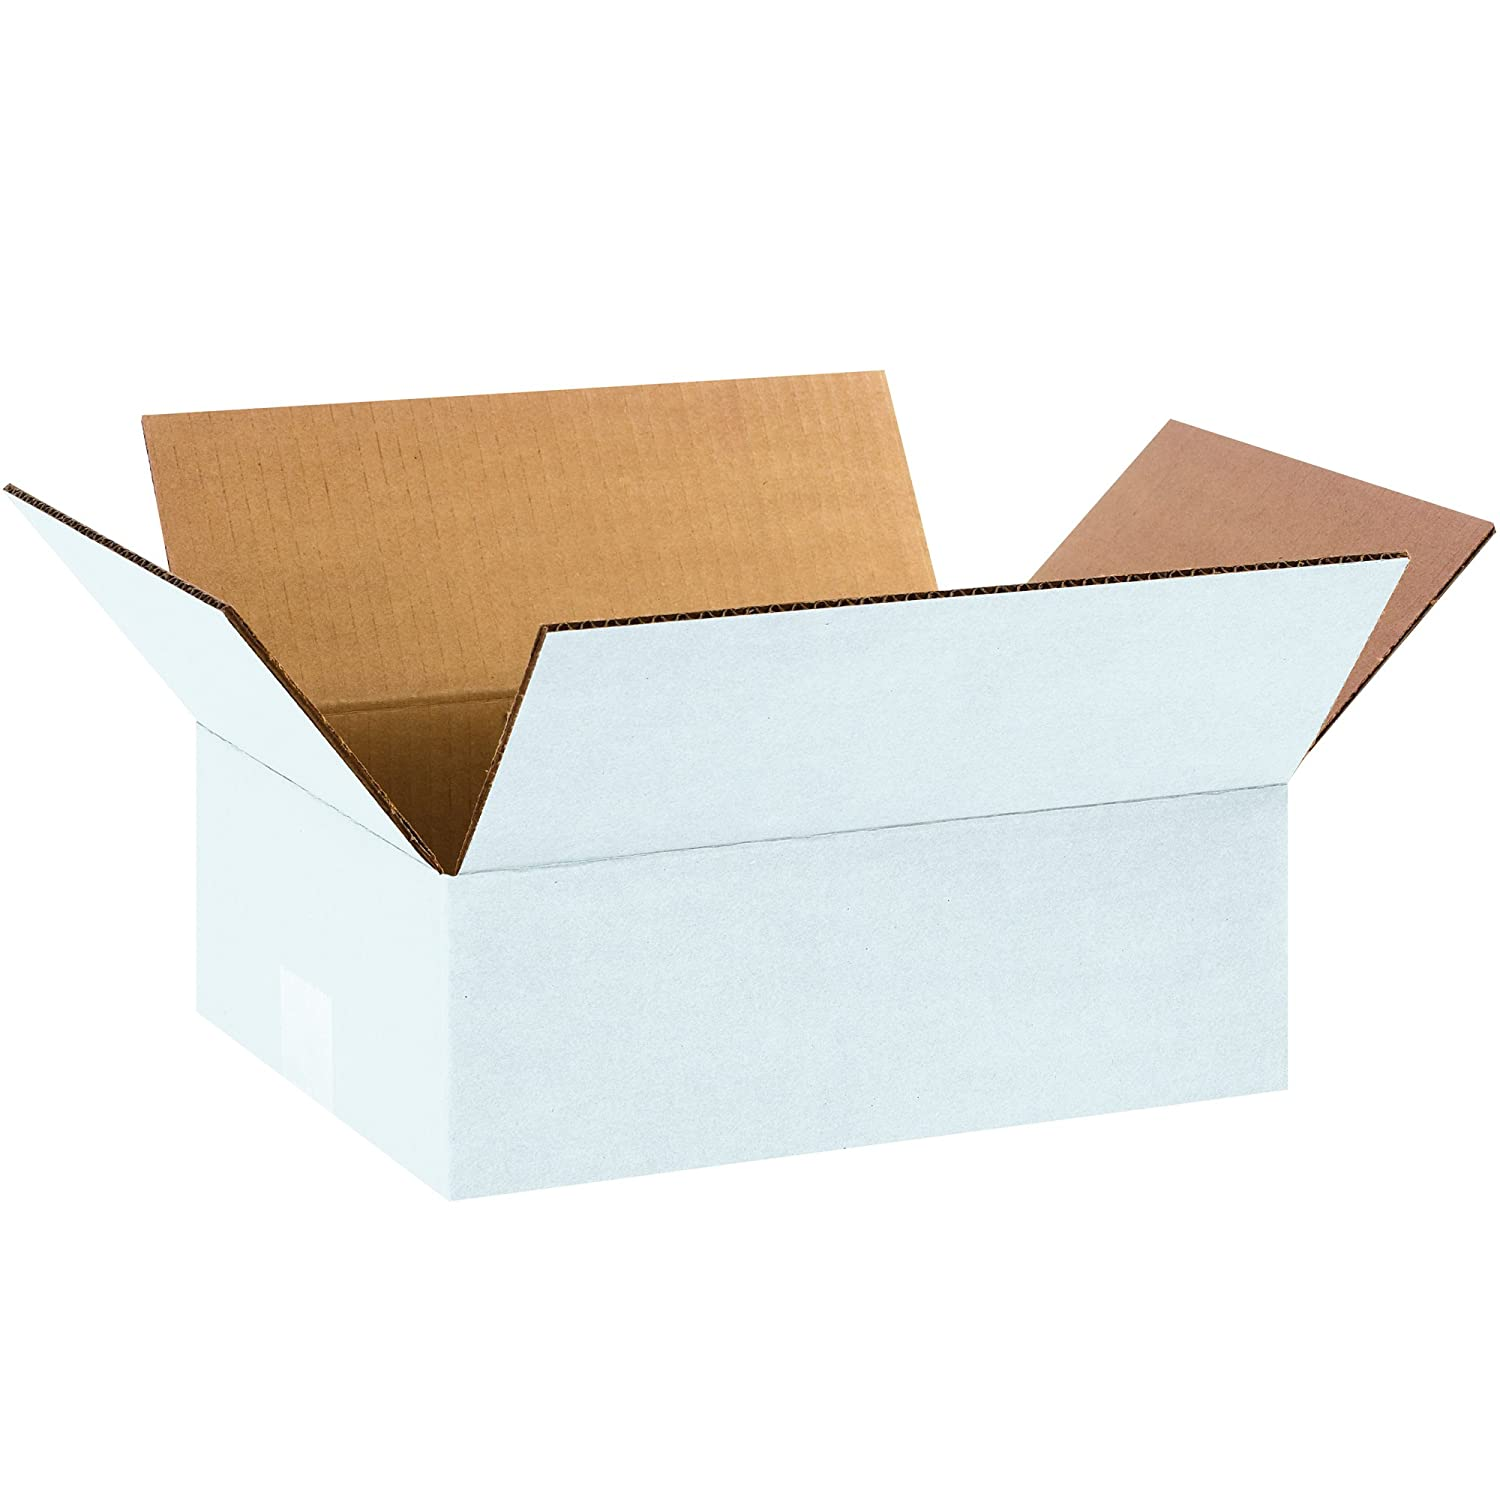 Pack of 25 12 x 9 x 4 White Tape Logic TL1294W Corrugated Boxes